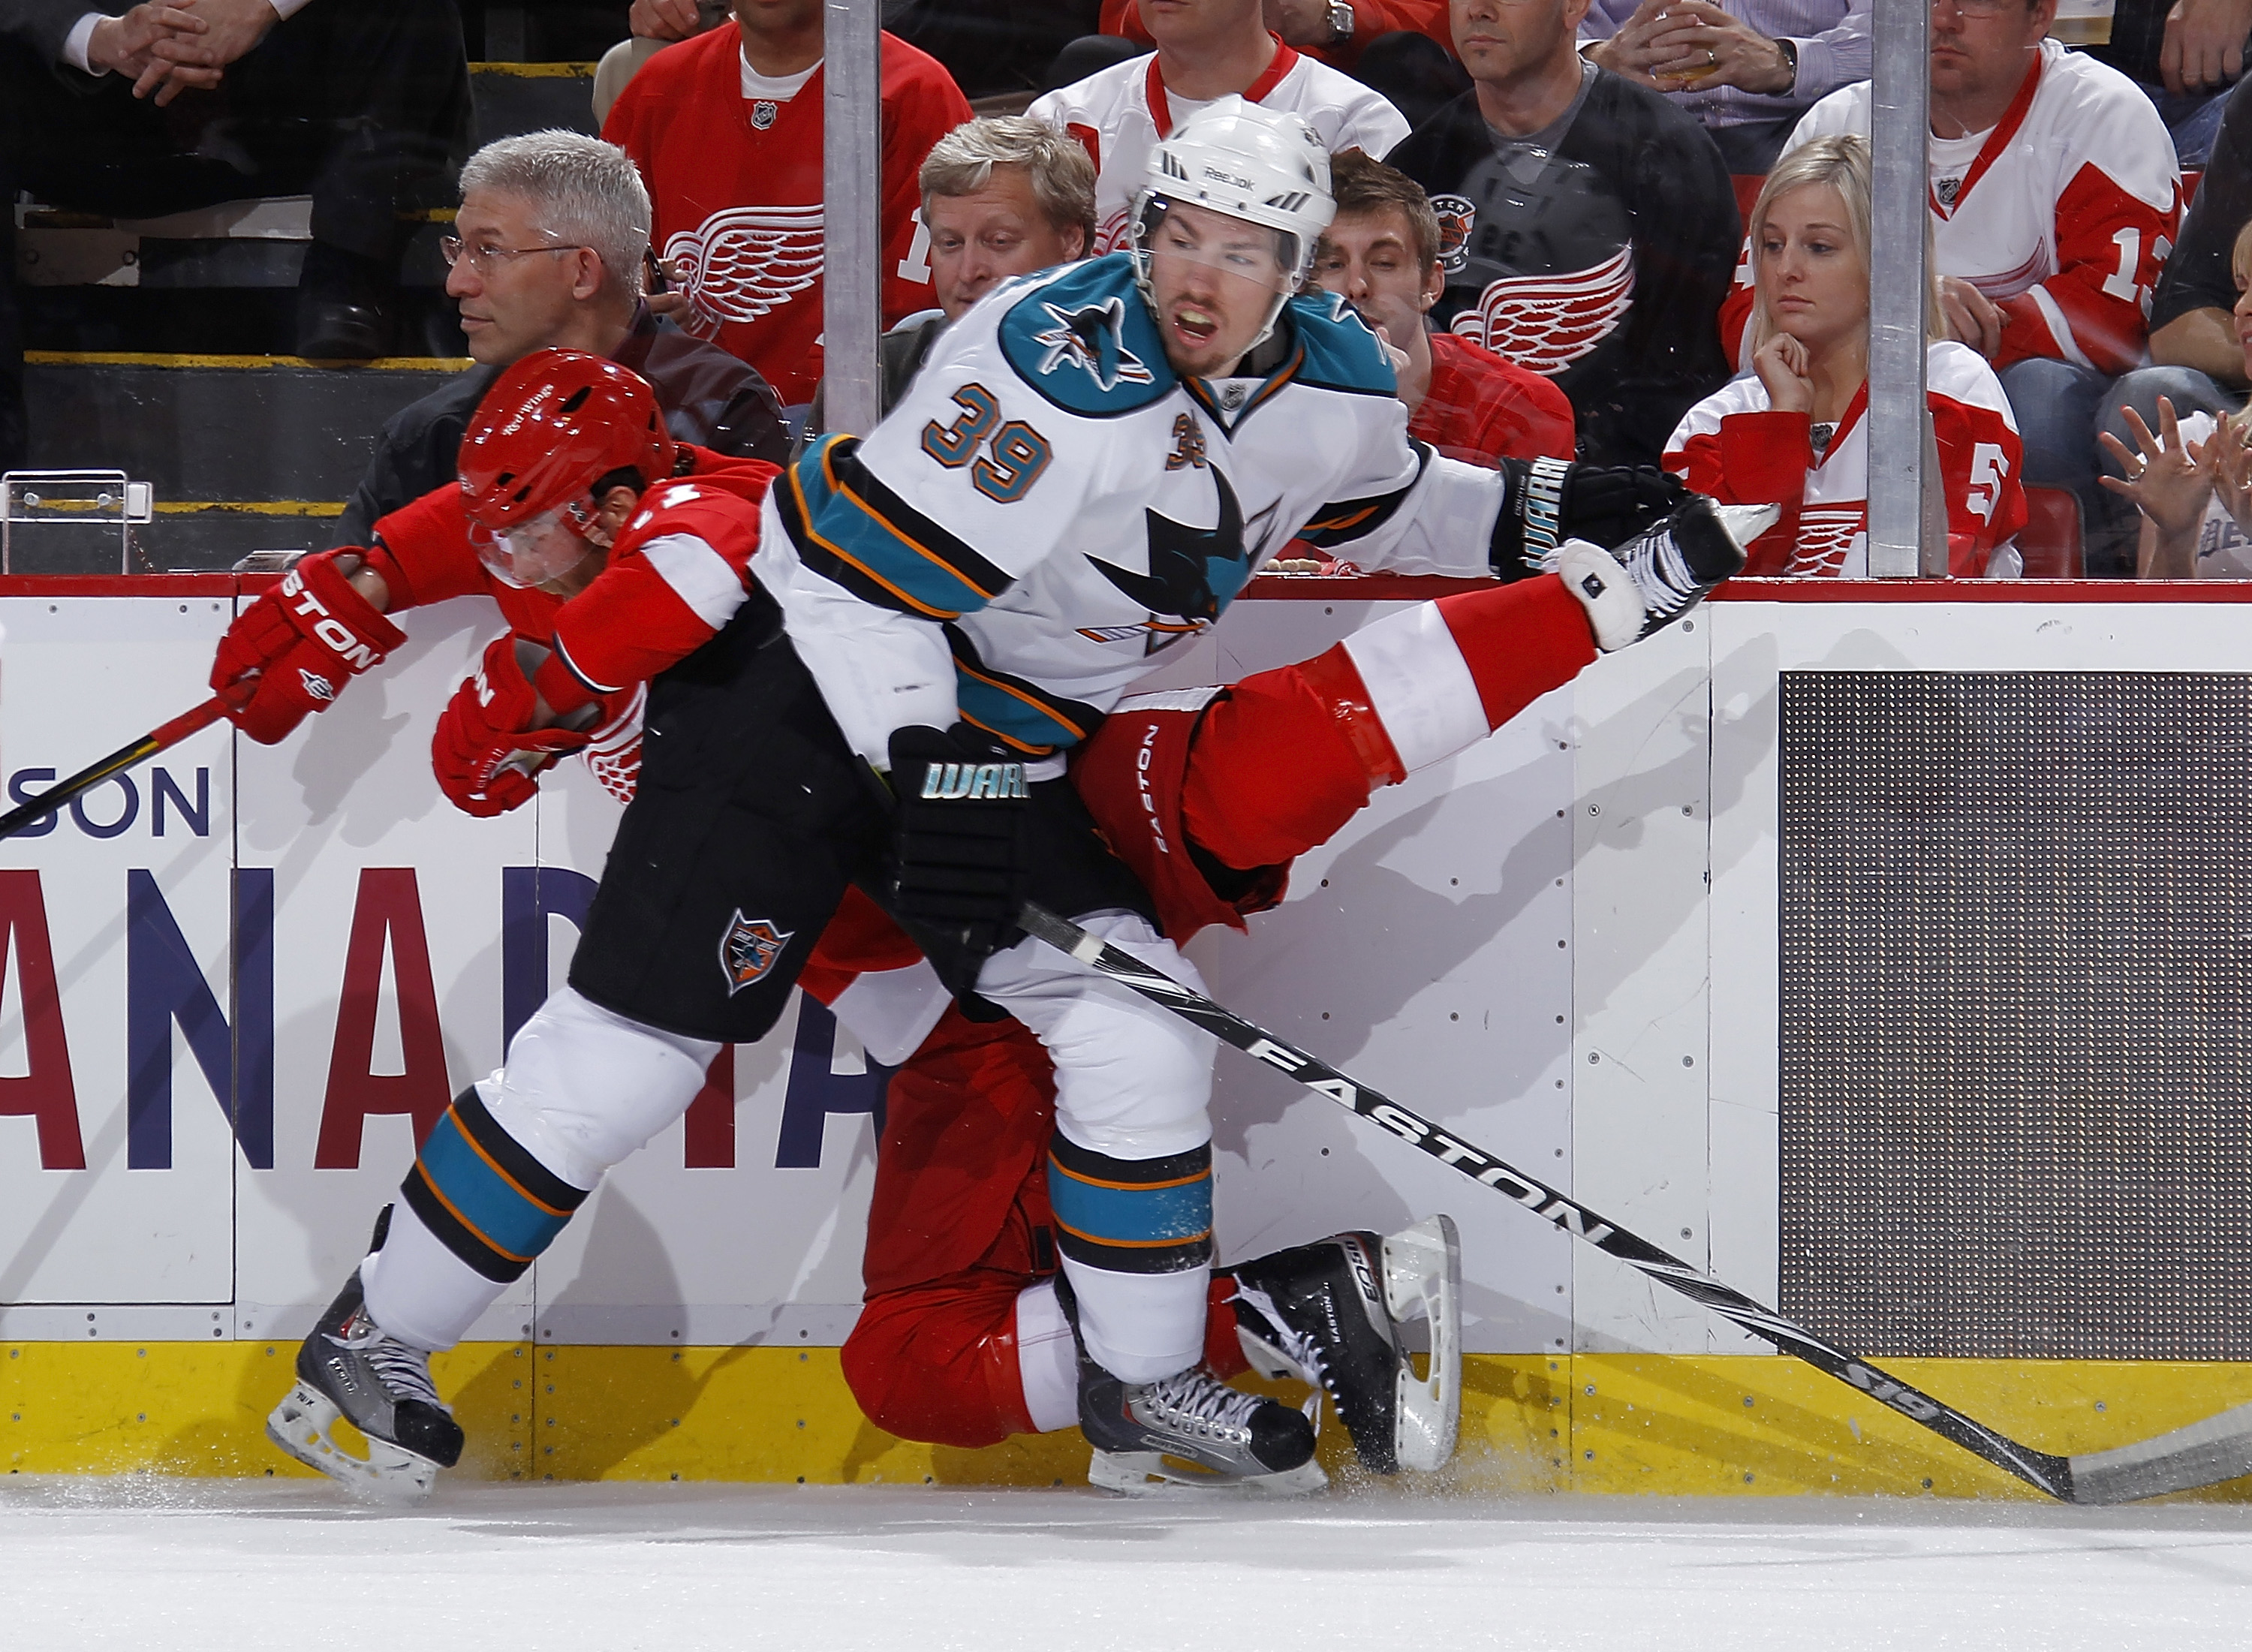 DETROIT - MAY 10: Logan Couture #39 of the San Jose Sharks checks Daniel Cleary #11 of the Detroit Red Wings into the boards during the first period in Game Six of the Western Conference Semifinals during the 2011 NHL Stanley Cup Playoffs on May 10, 2011